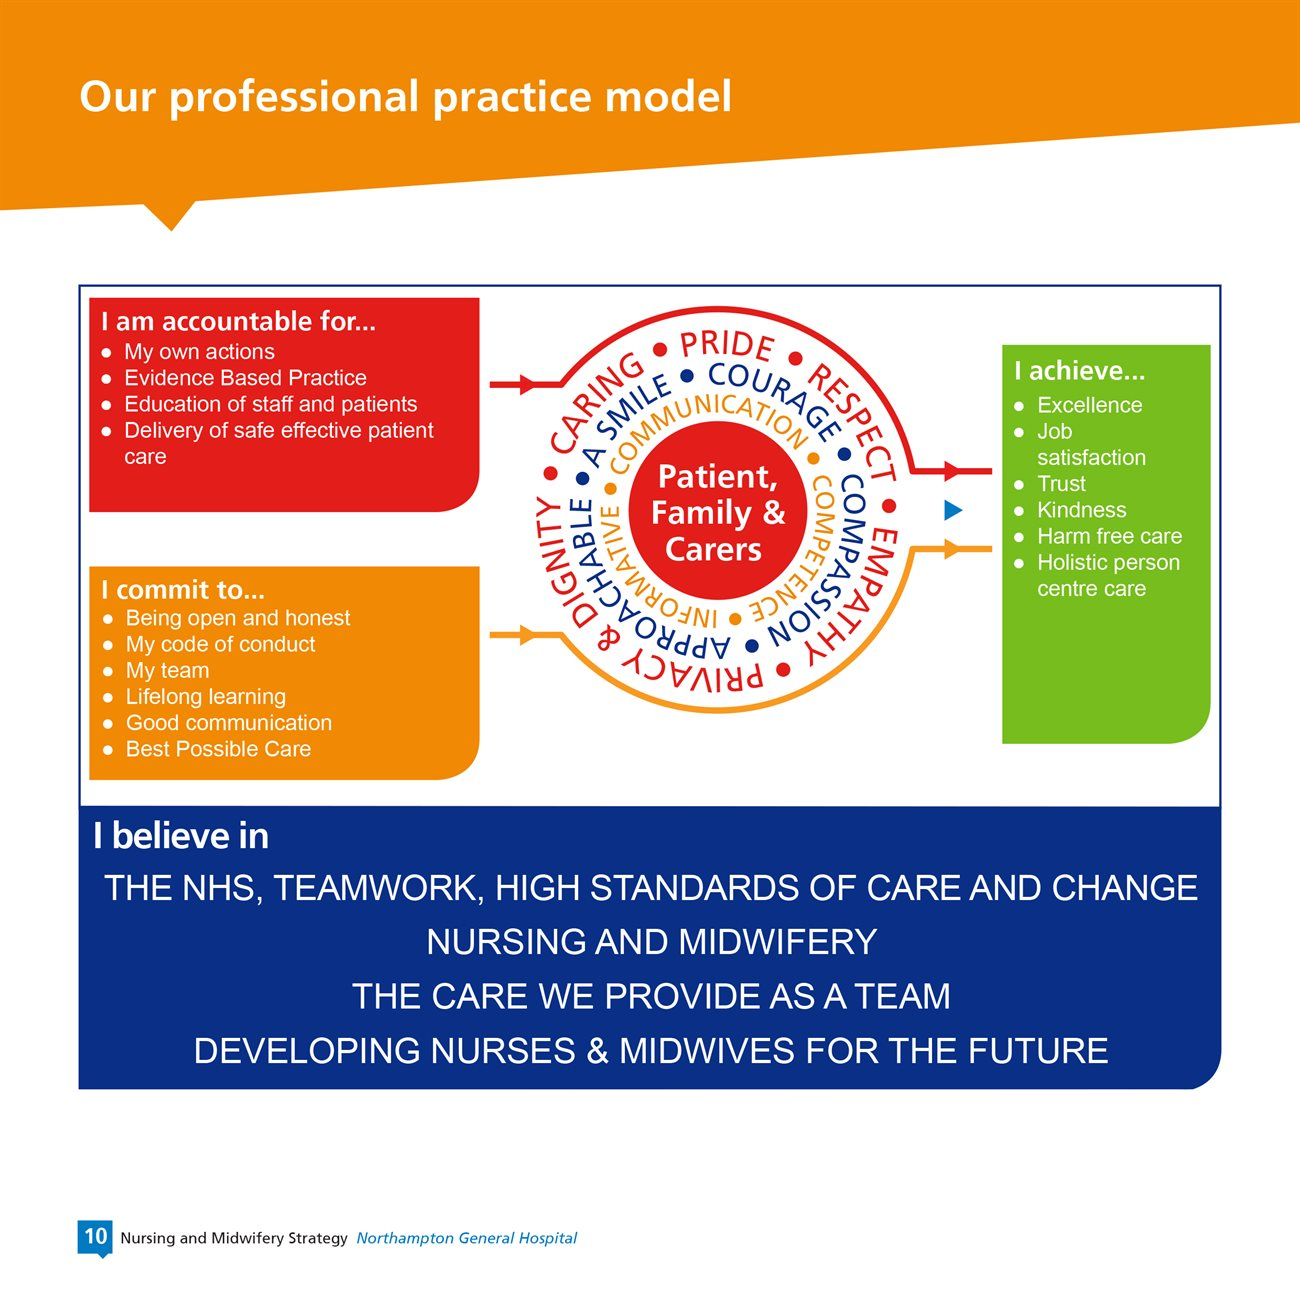 Our nursing and midwifery strategy for Nursing Professional Practice Model  83fiz